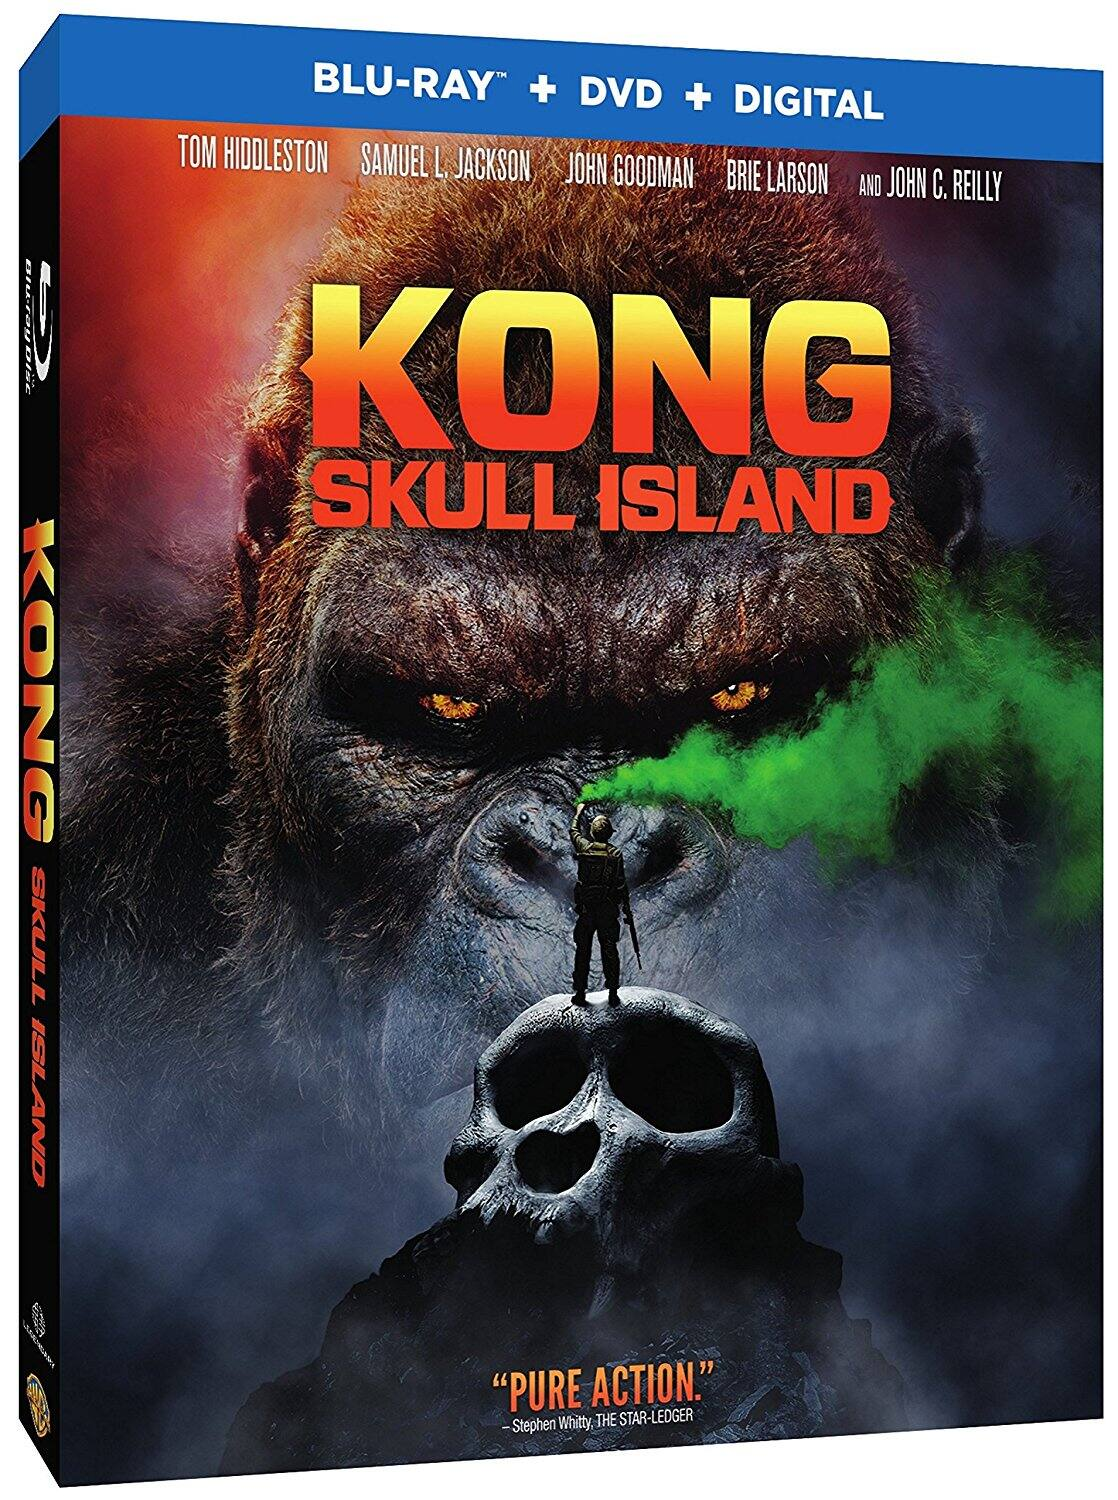 Kong: Skull Island (Blu-ray + DVD + Digital HD) $5.99 @ Amazon